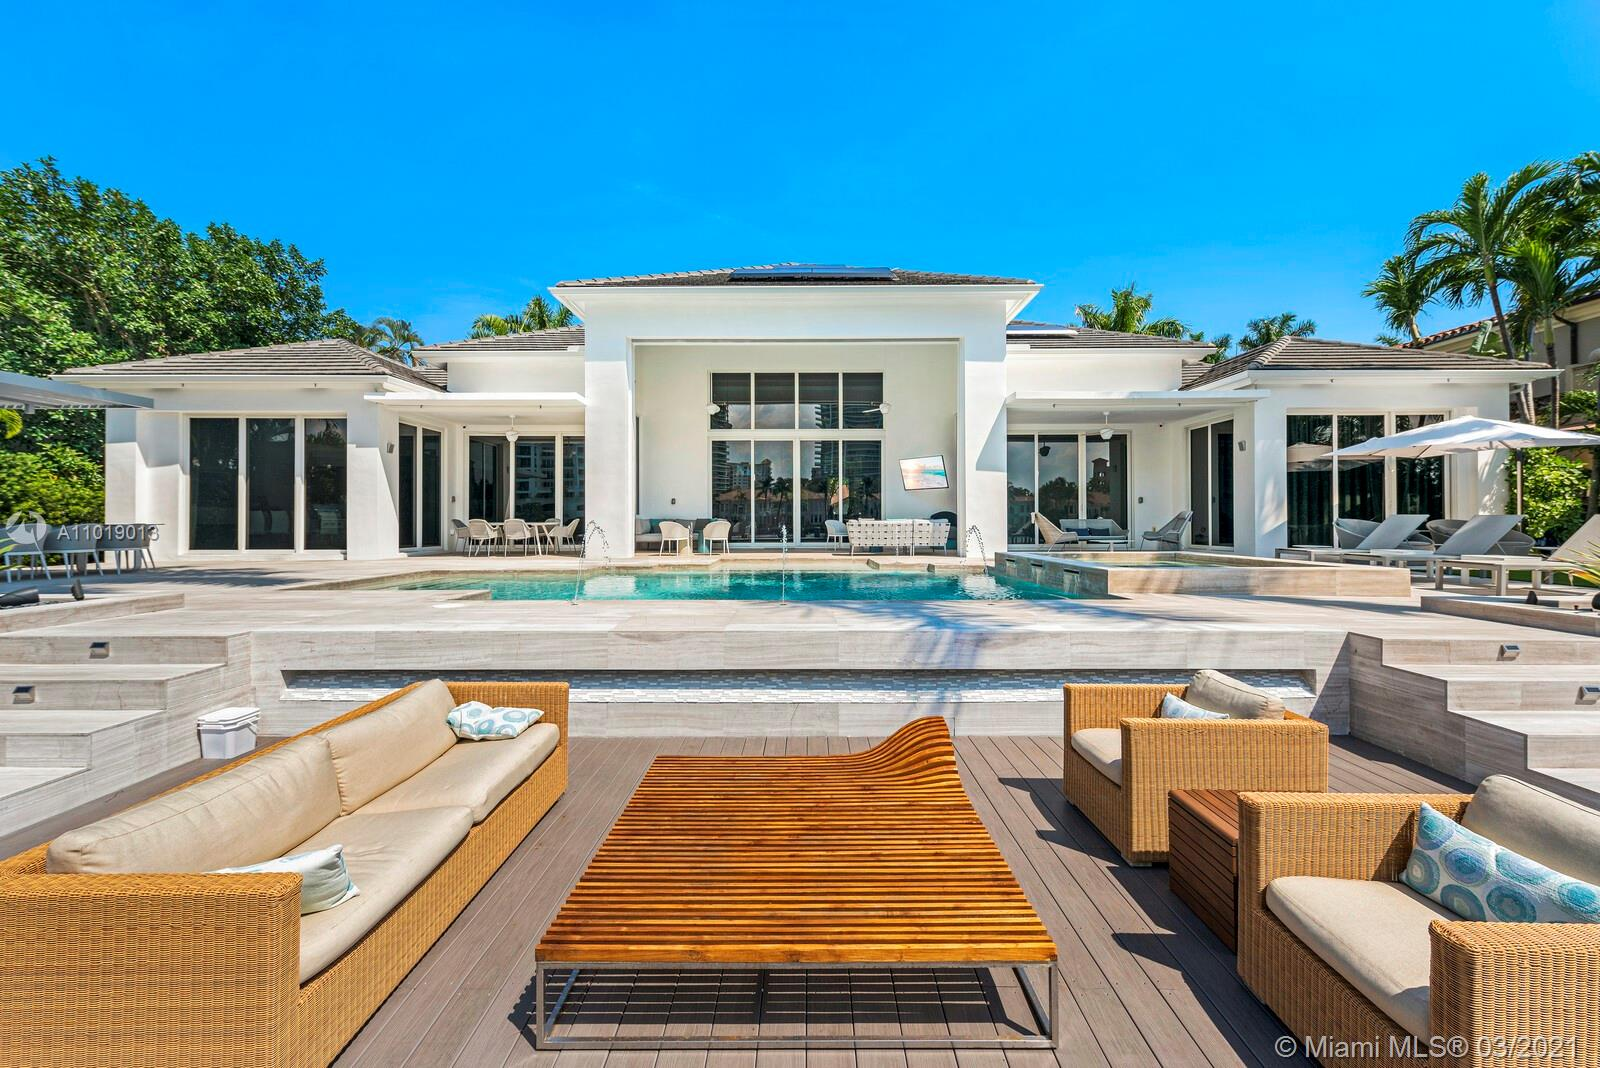 224 S Island Is Luxury Real Estate